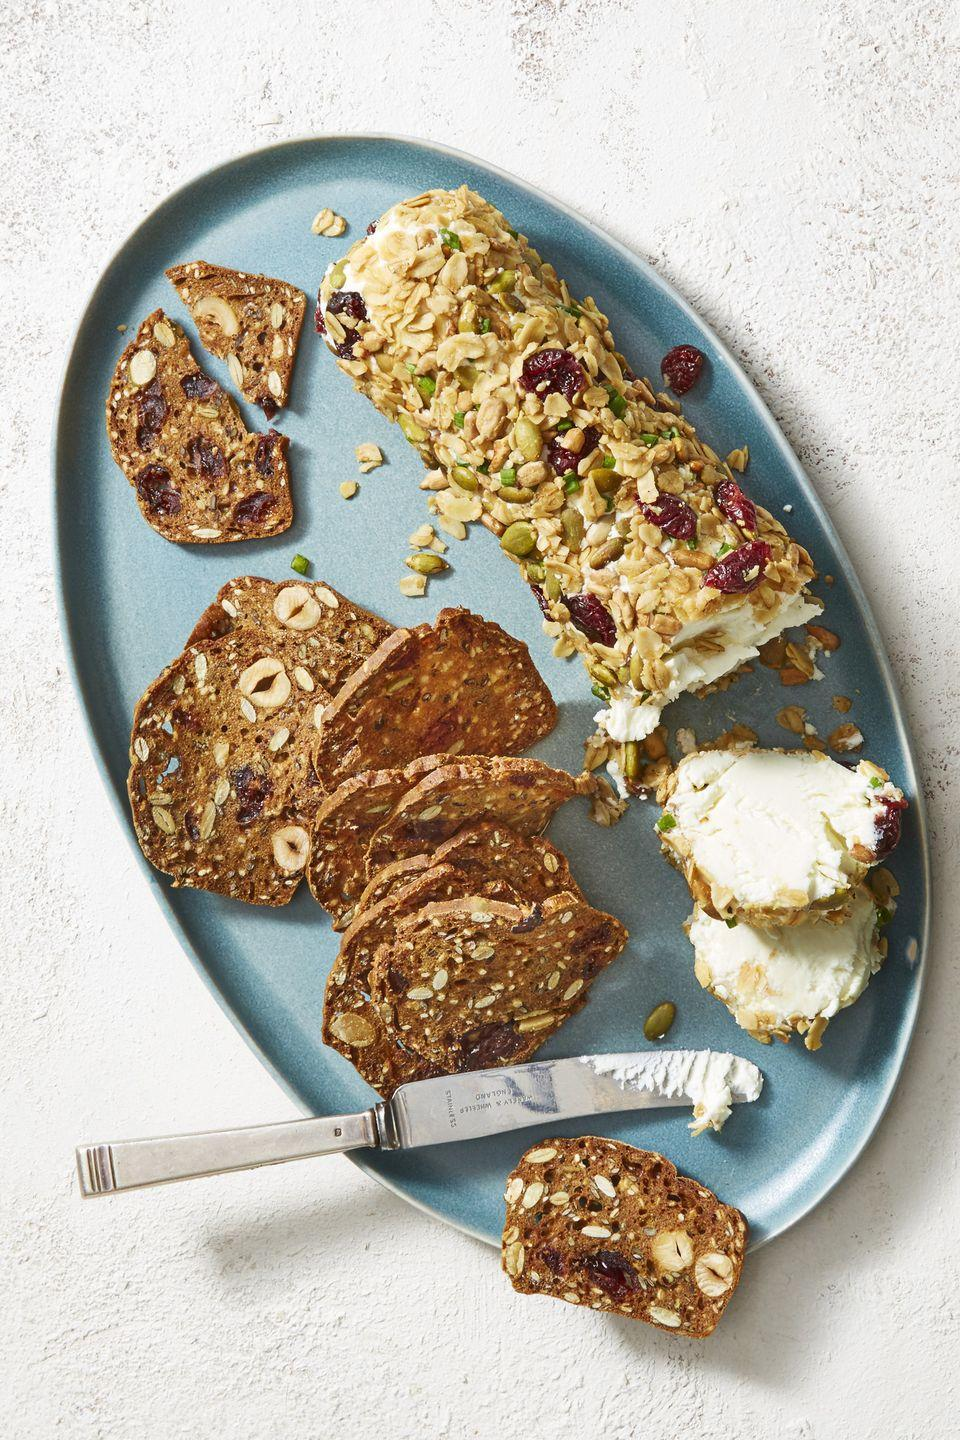 """<p>Nothing tops a tray of cheese and <a href=""""https://www.goodhousekeeping.com/food-recipes/easy/a22657016/saltine-crackers-recipe/"""" rel=""""nofollow noopener"""" target=""""_blank"""" data-ylk=""""slk:crackers"""" class=""""link rapid-noclick-resp"""">crackers</a> ... well, unless it's a whole log of cheese. </p><p><em><a href=""""https://www.goodhousekeeping.com/food-recipes/party-ideas/a22750509/goat-cheese-log-with-cranberries-chives-and-black-pepper-recipe/"""" rel=""""nofollow noopener"""" target=""""_blank"""" data-ylk=""""slk:Get the recipe for Goat Cheese Log With Cranberries, Chives and Black Pepper »"""" class=""""link rapid-noclick-resp"""">Get the recipe for Goat Cheese Log With Cranberries, Chives and Black Pepper »</a></em></p>"""